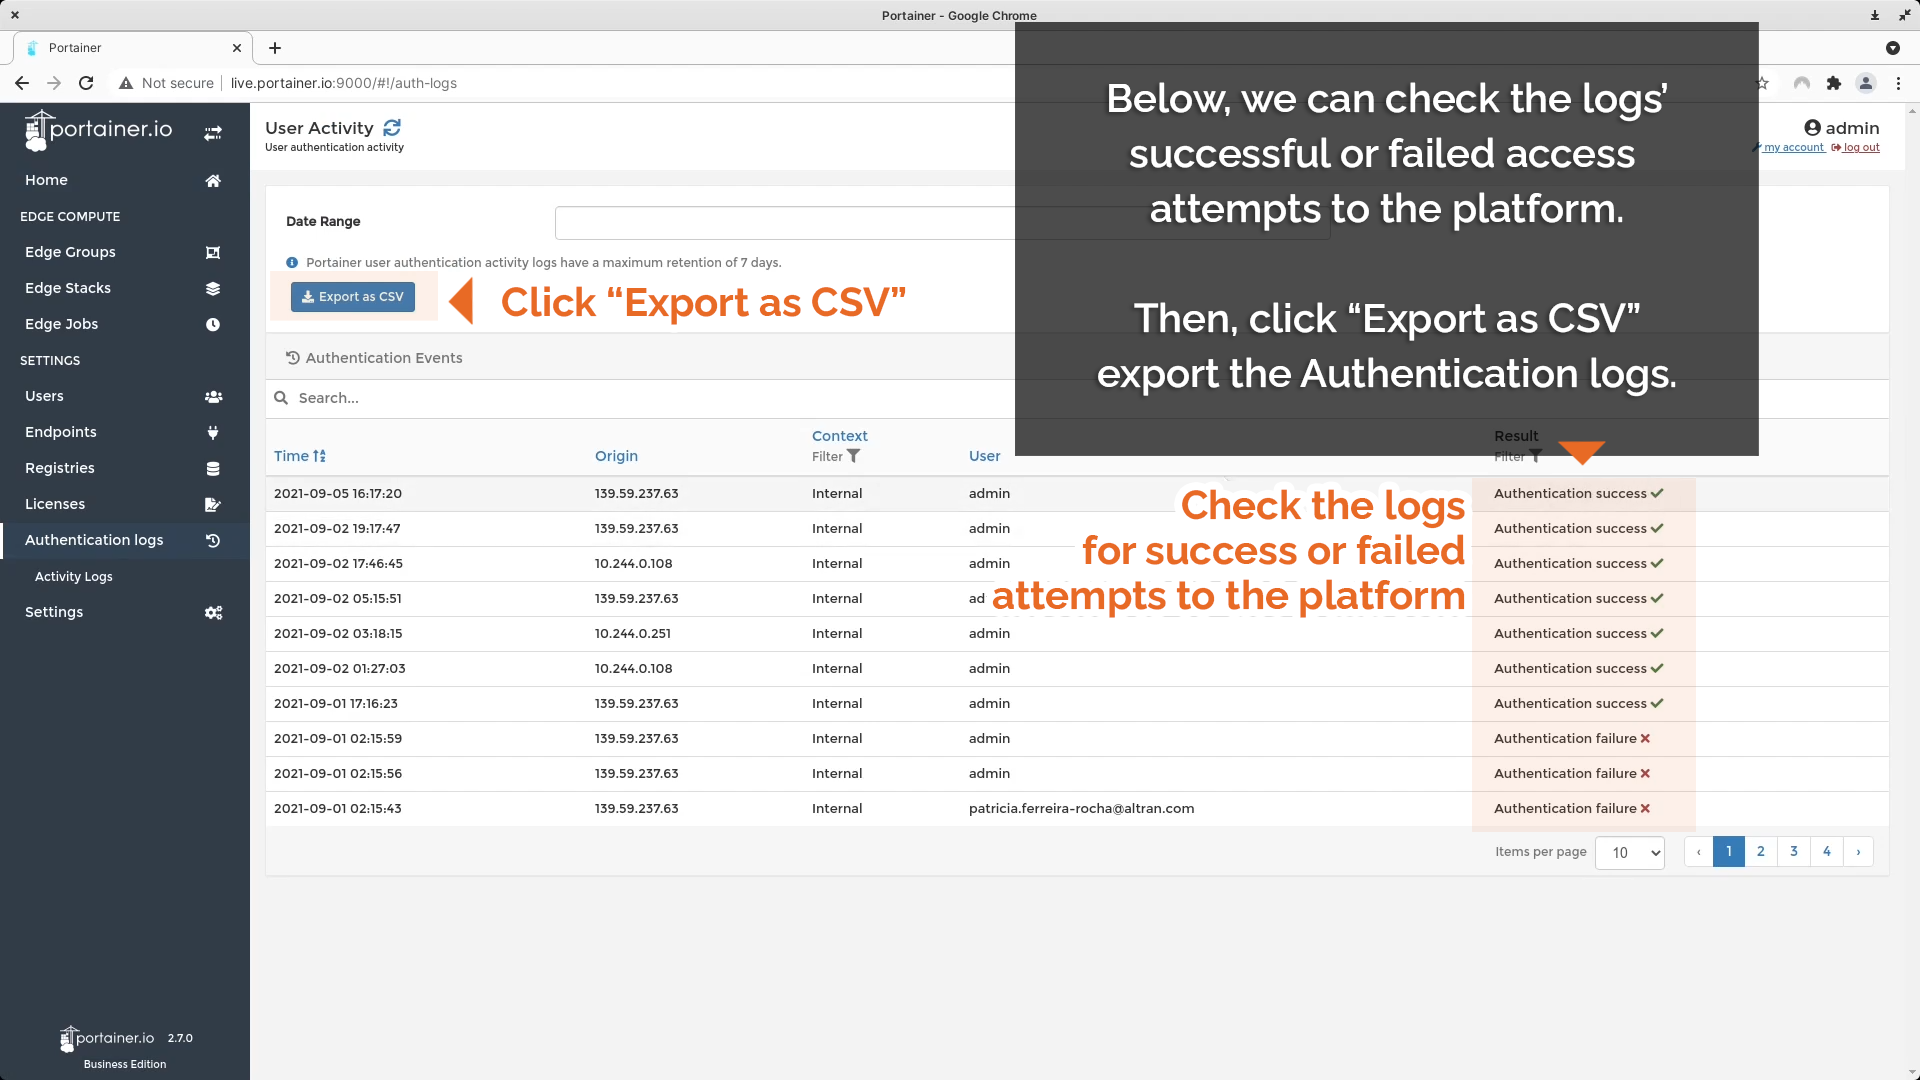 Check Authentication logs for success or failure